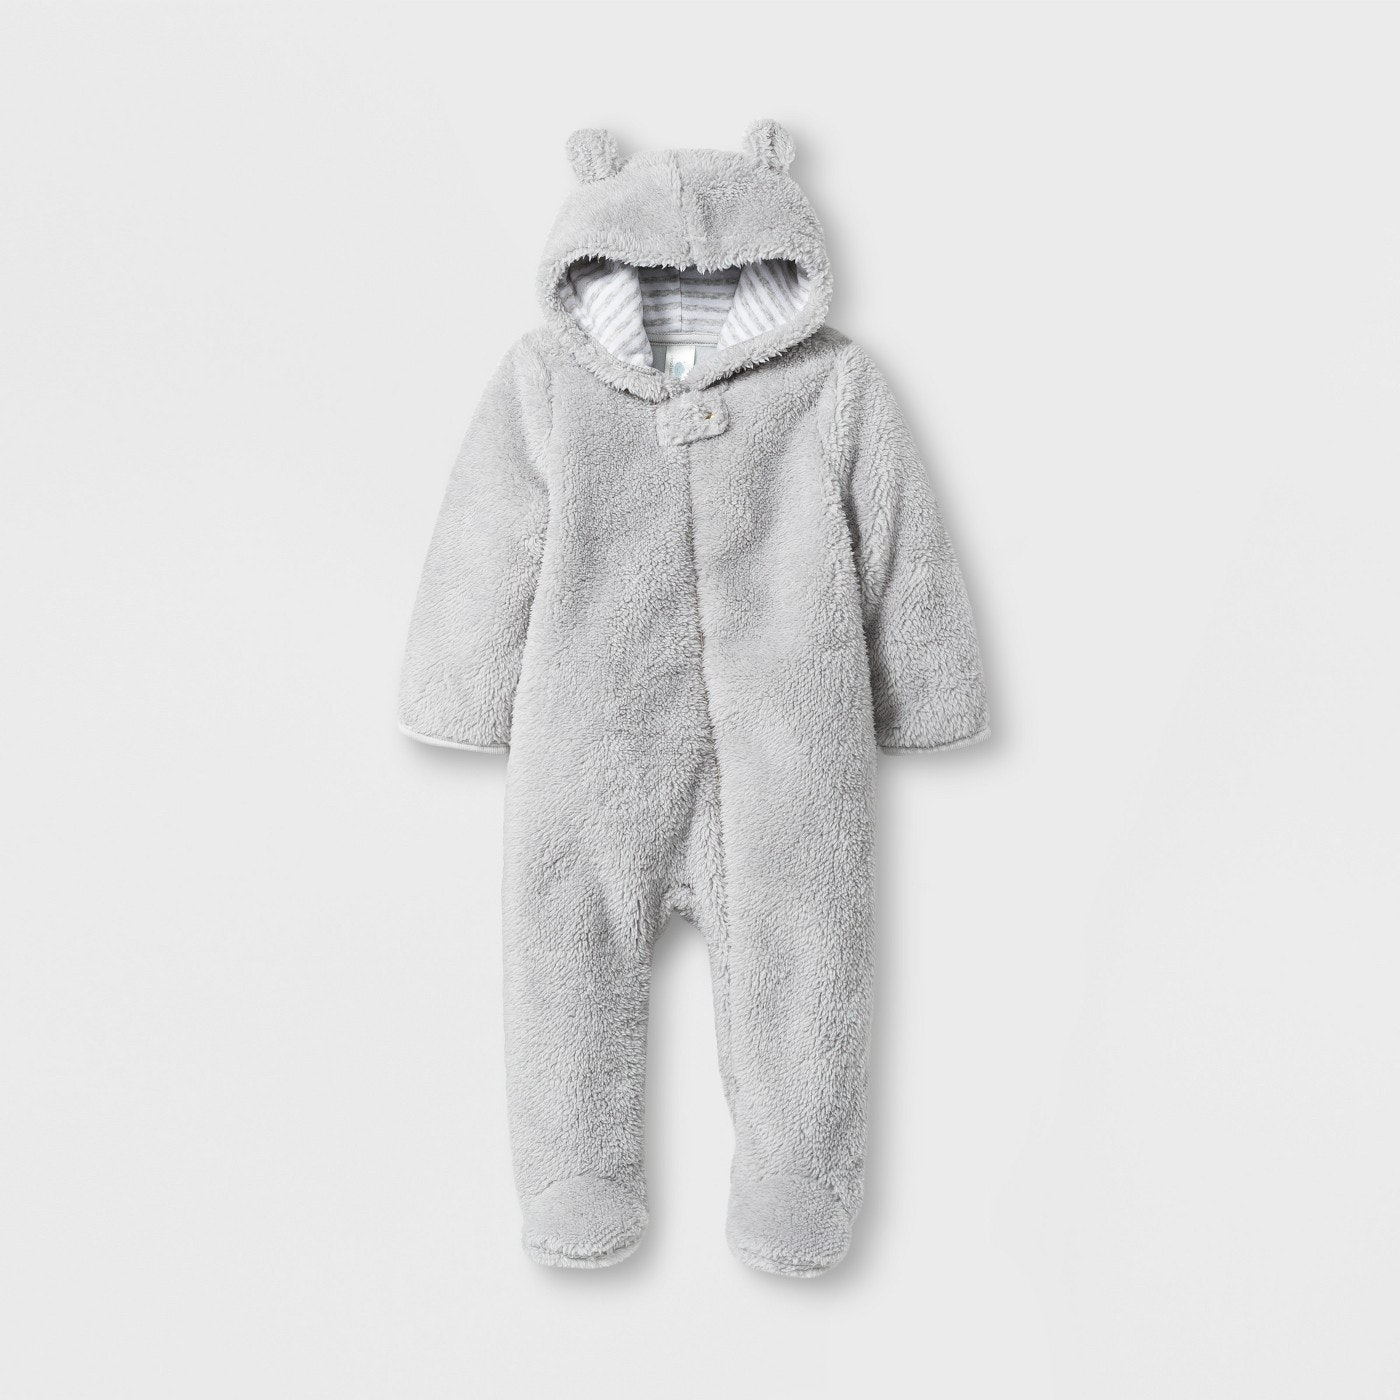 3b204615b 15 Cute Gender-Neutral Baby Clothes From Target, That Will Go With  Everything In Their Closet